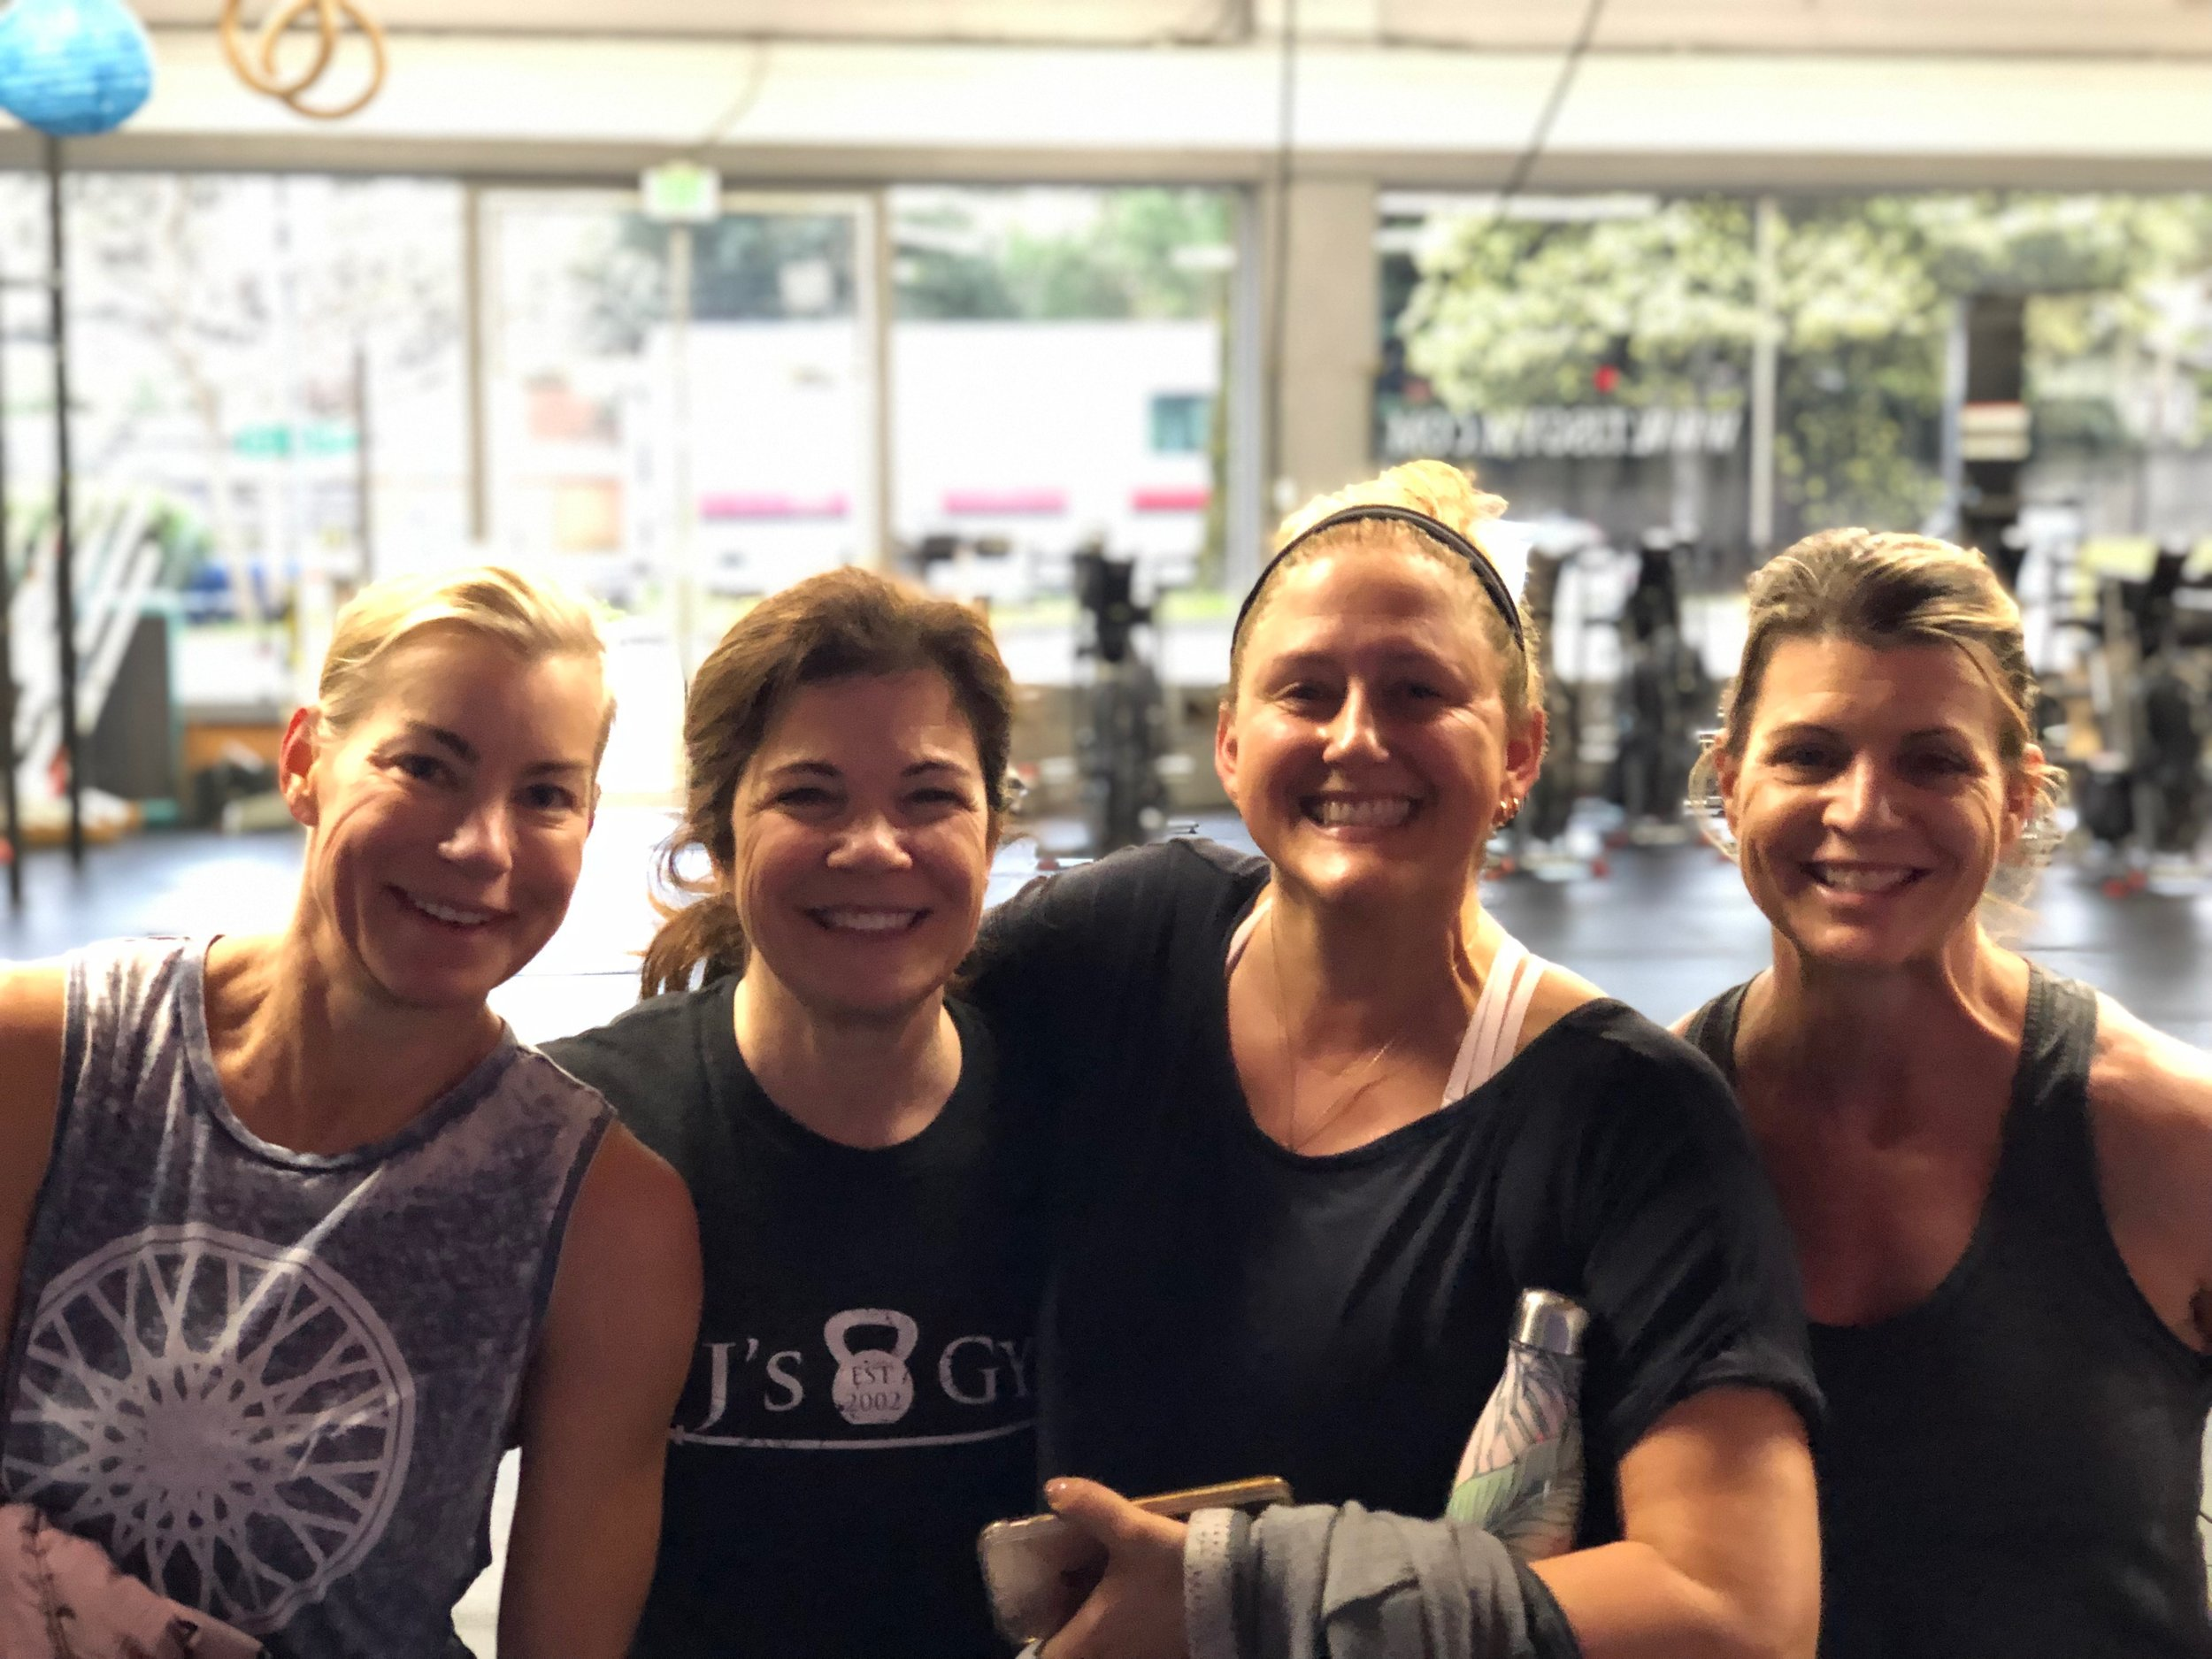 Our Community is the best! - Photos like this one make us reflect on how much greatness goes on inside our gyms. These powerhouse women have been coming for years, and we are so grateful for their presence, hard work, and friendship.